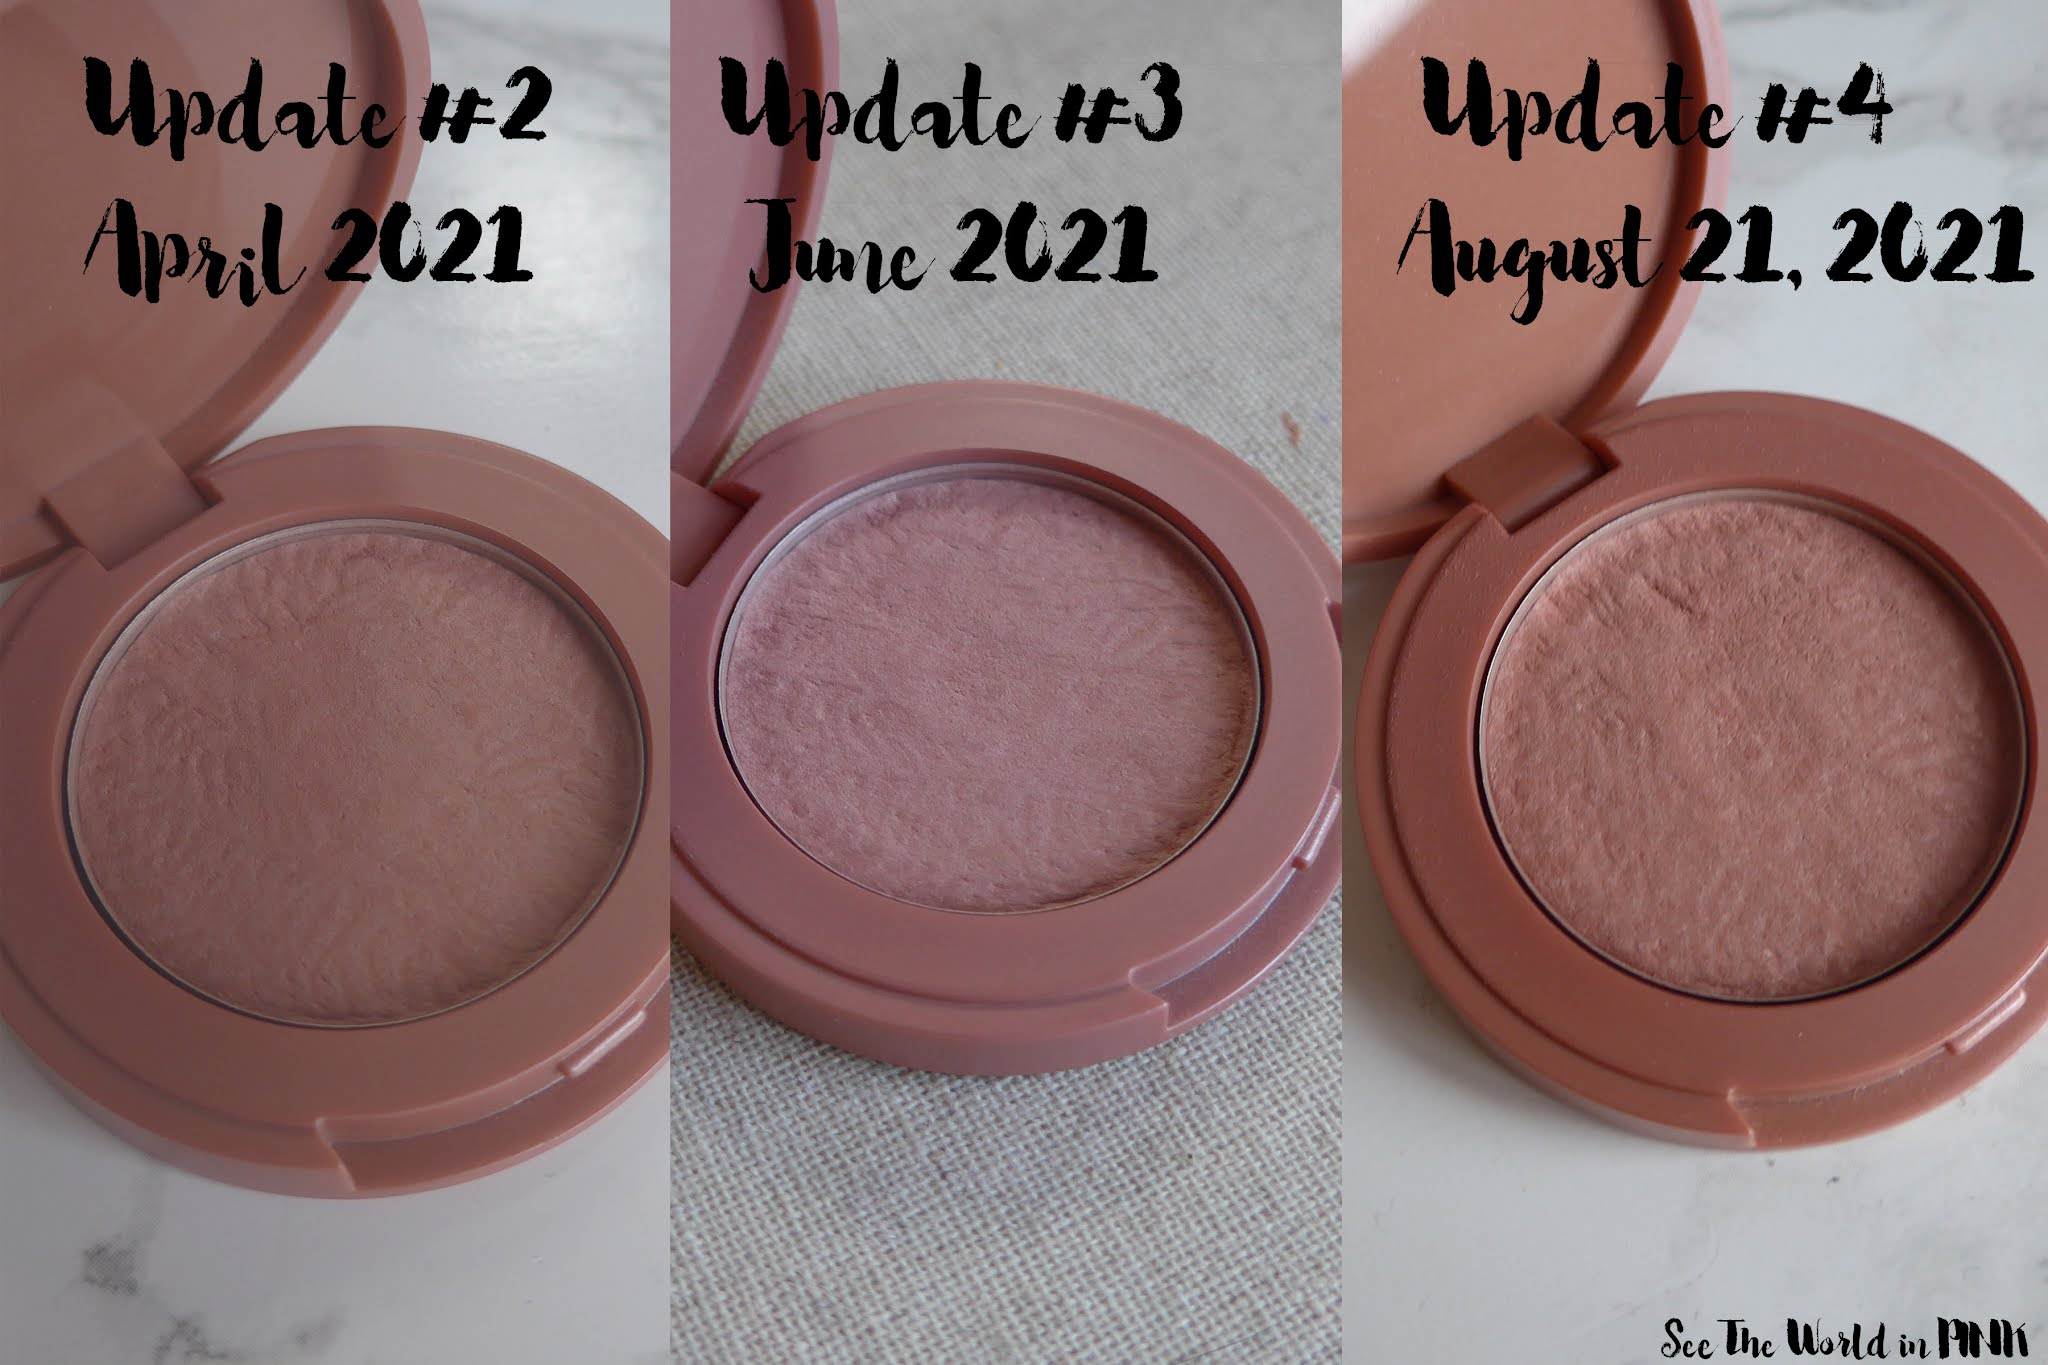 Project Pan 21 in 2021 ~ Update #4